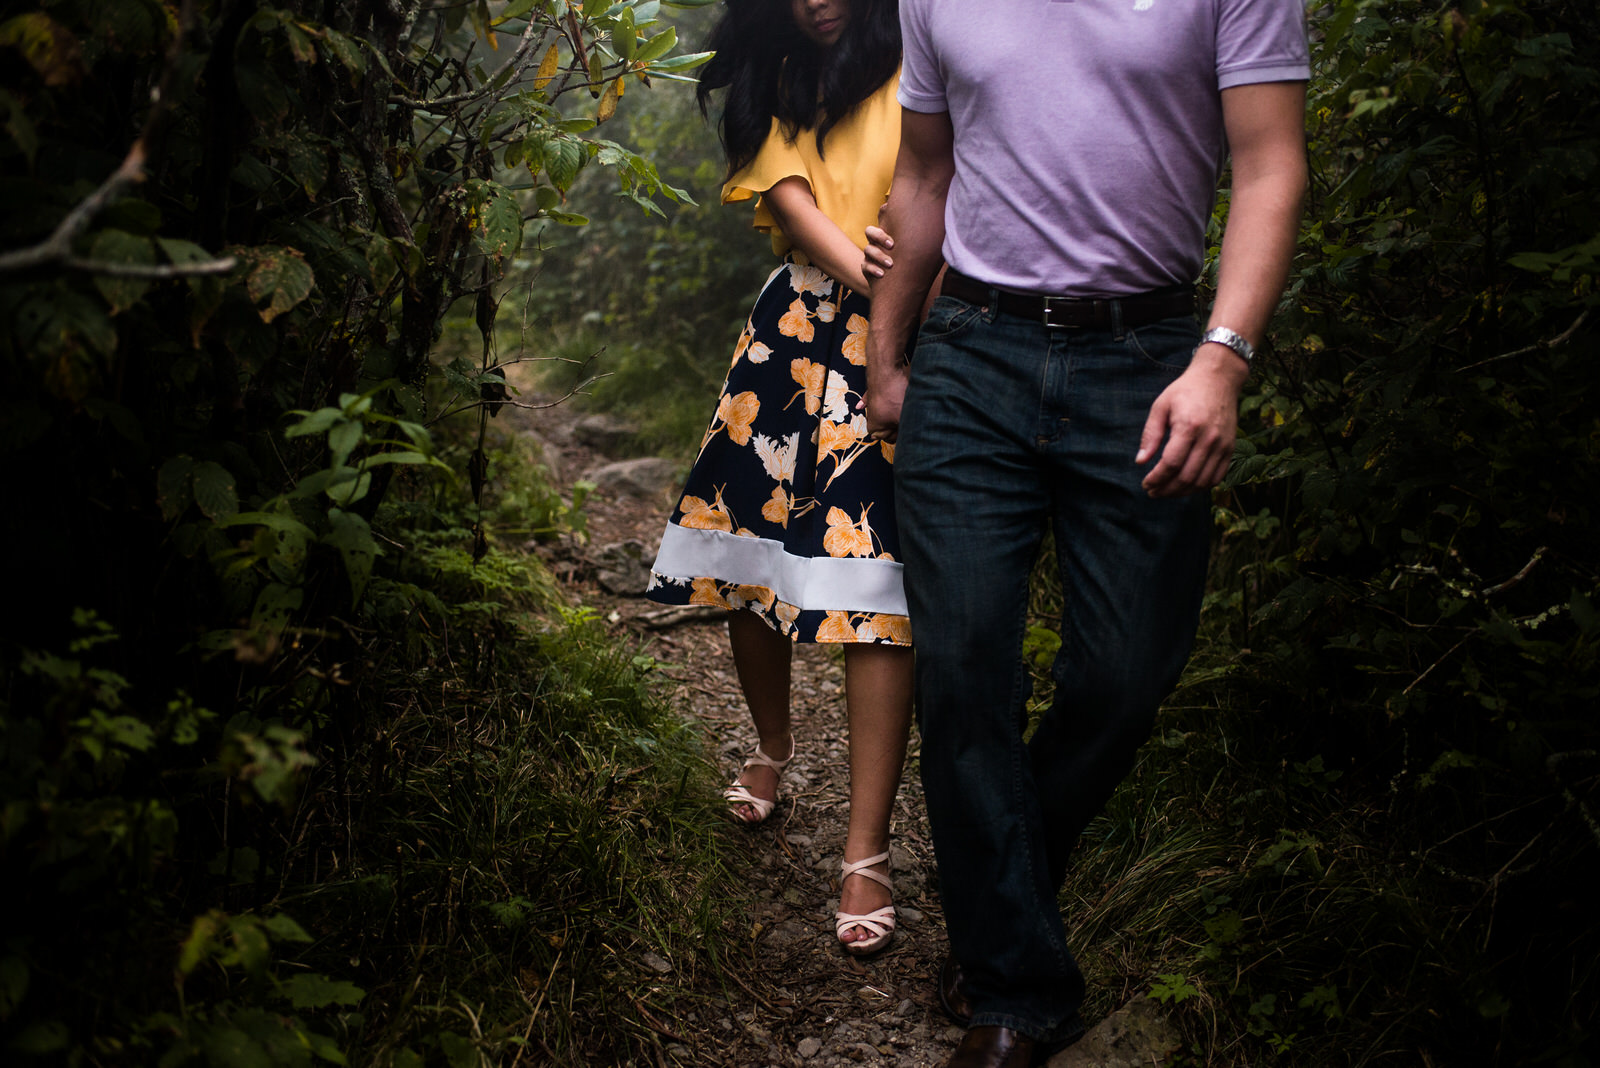 Craggy-Gardens-Engagement-Session-45.jpg